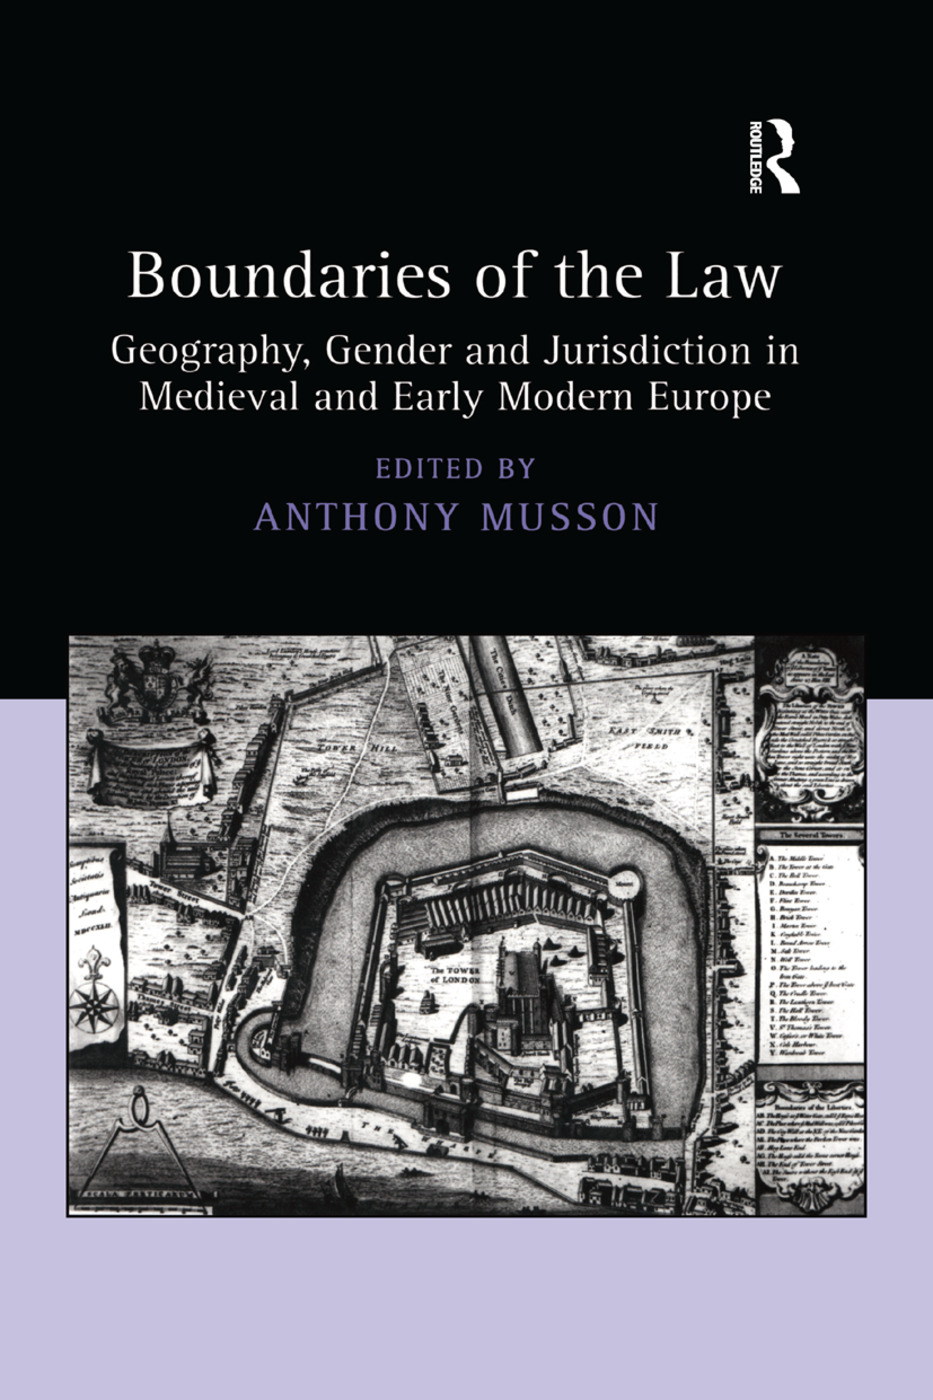 Boundaries of the Law: Geography, Gender and Jurisdiction in Medieval and Early Modern Europe book cover